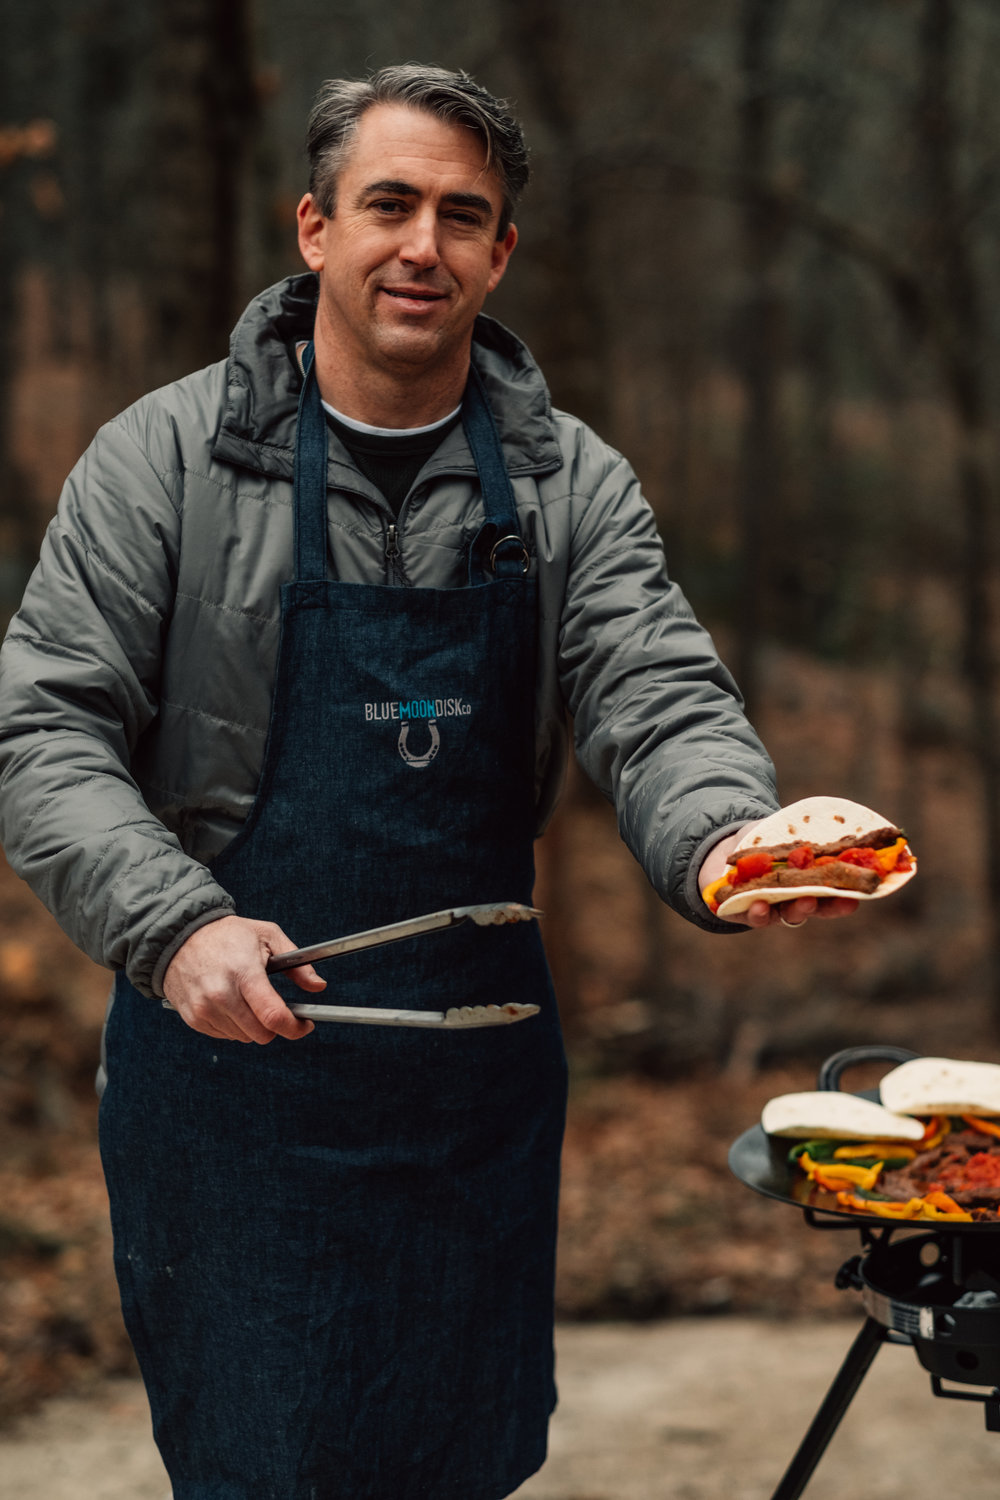 Chuck Peyton, owner and inventor of the Blue Moon Disk, sprinkles Discada Seasoning over deer-steak fajitas during a backyard cookout. The all-purpose seasoning includes a custom blend of spices that brings out the savory flavor of any dish.